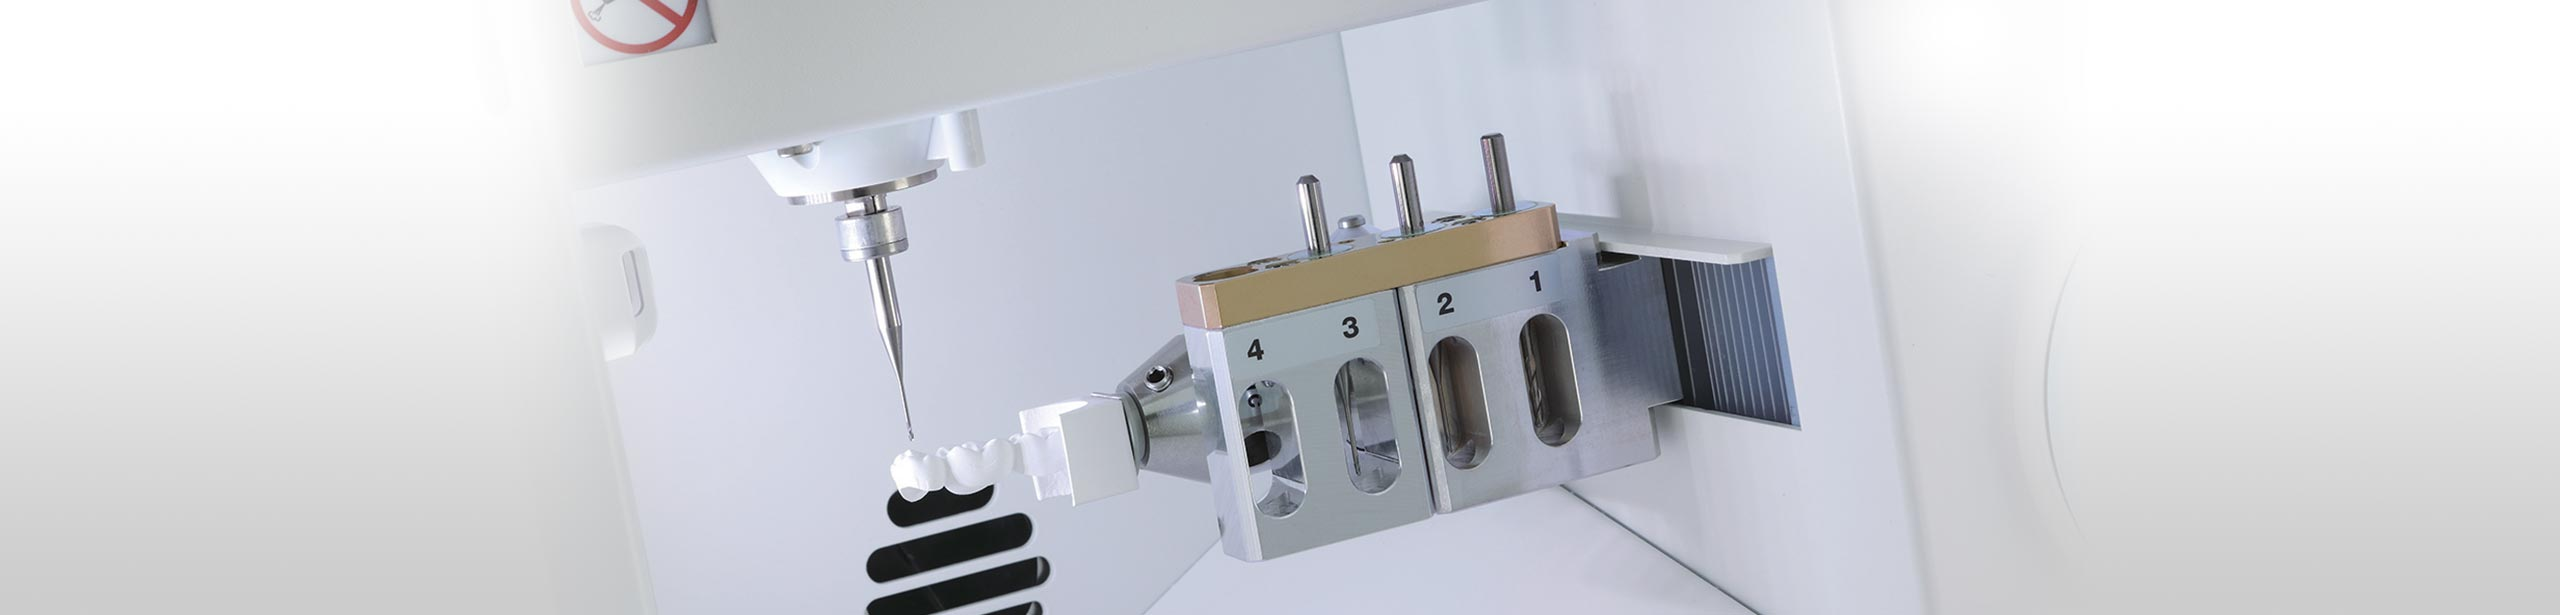 DWX-4 user-friendly desktop compact dental milling system